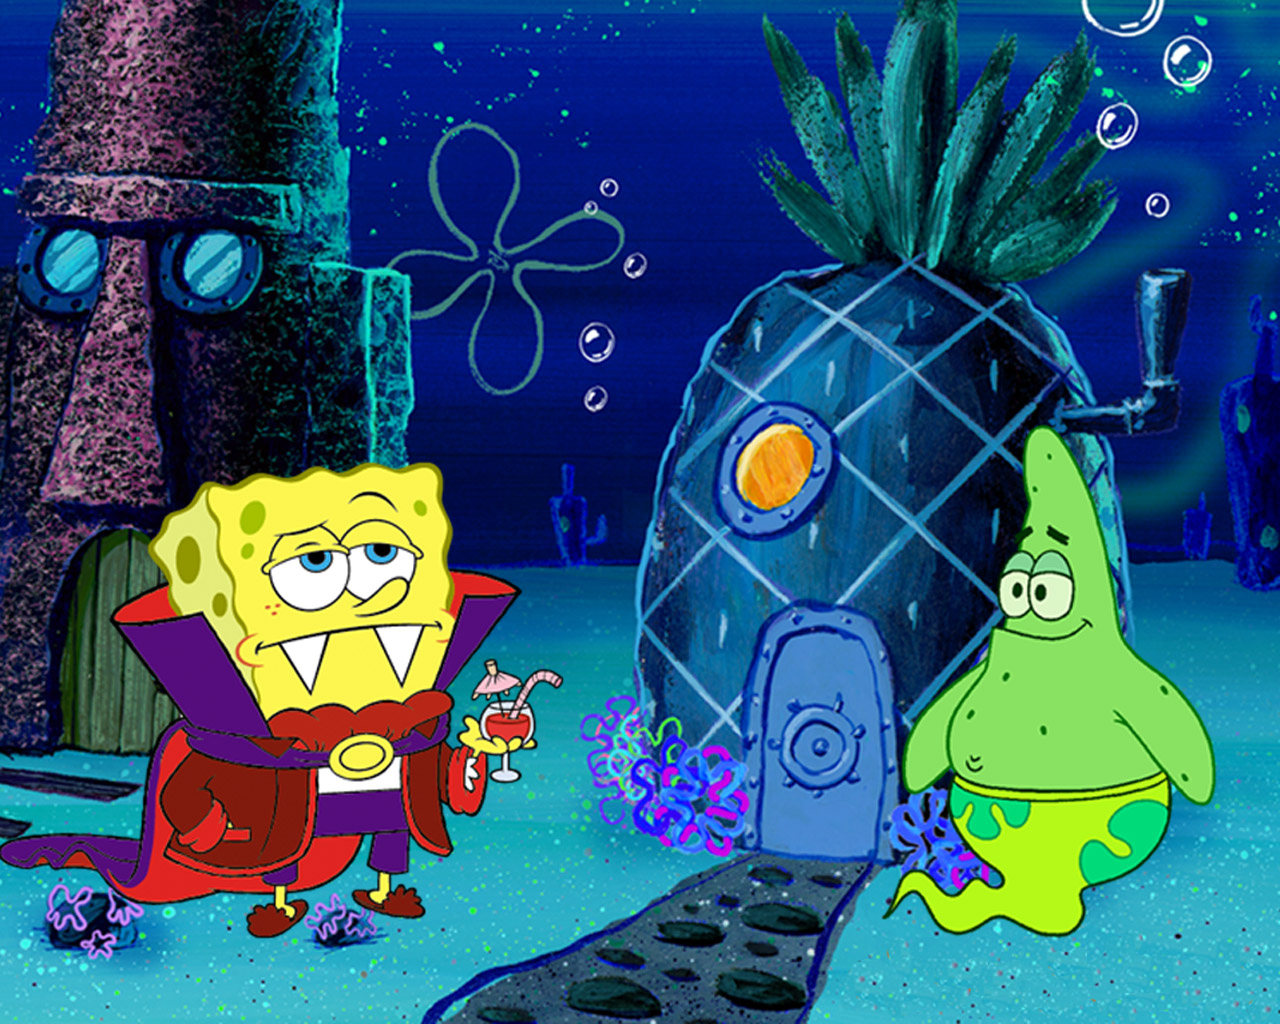 image - spongebob-halloween-costumes-wallpaper-desktop-background